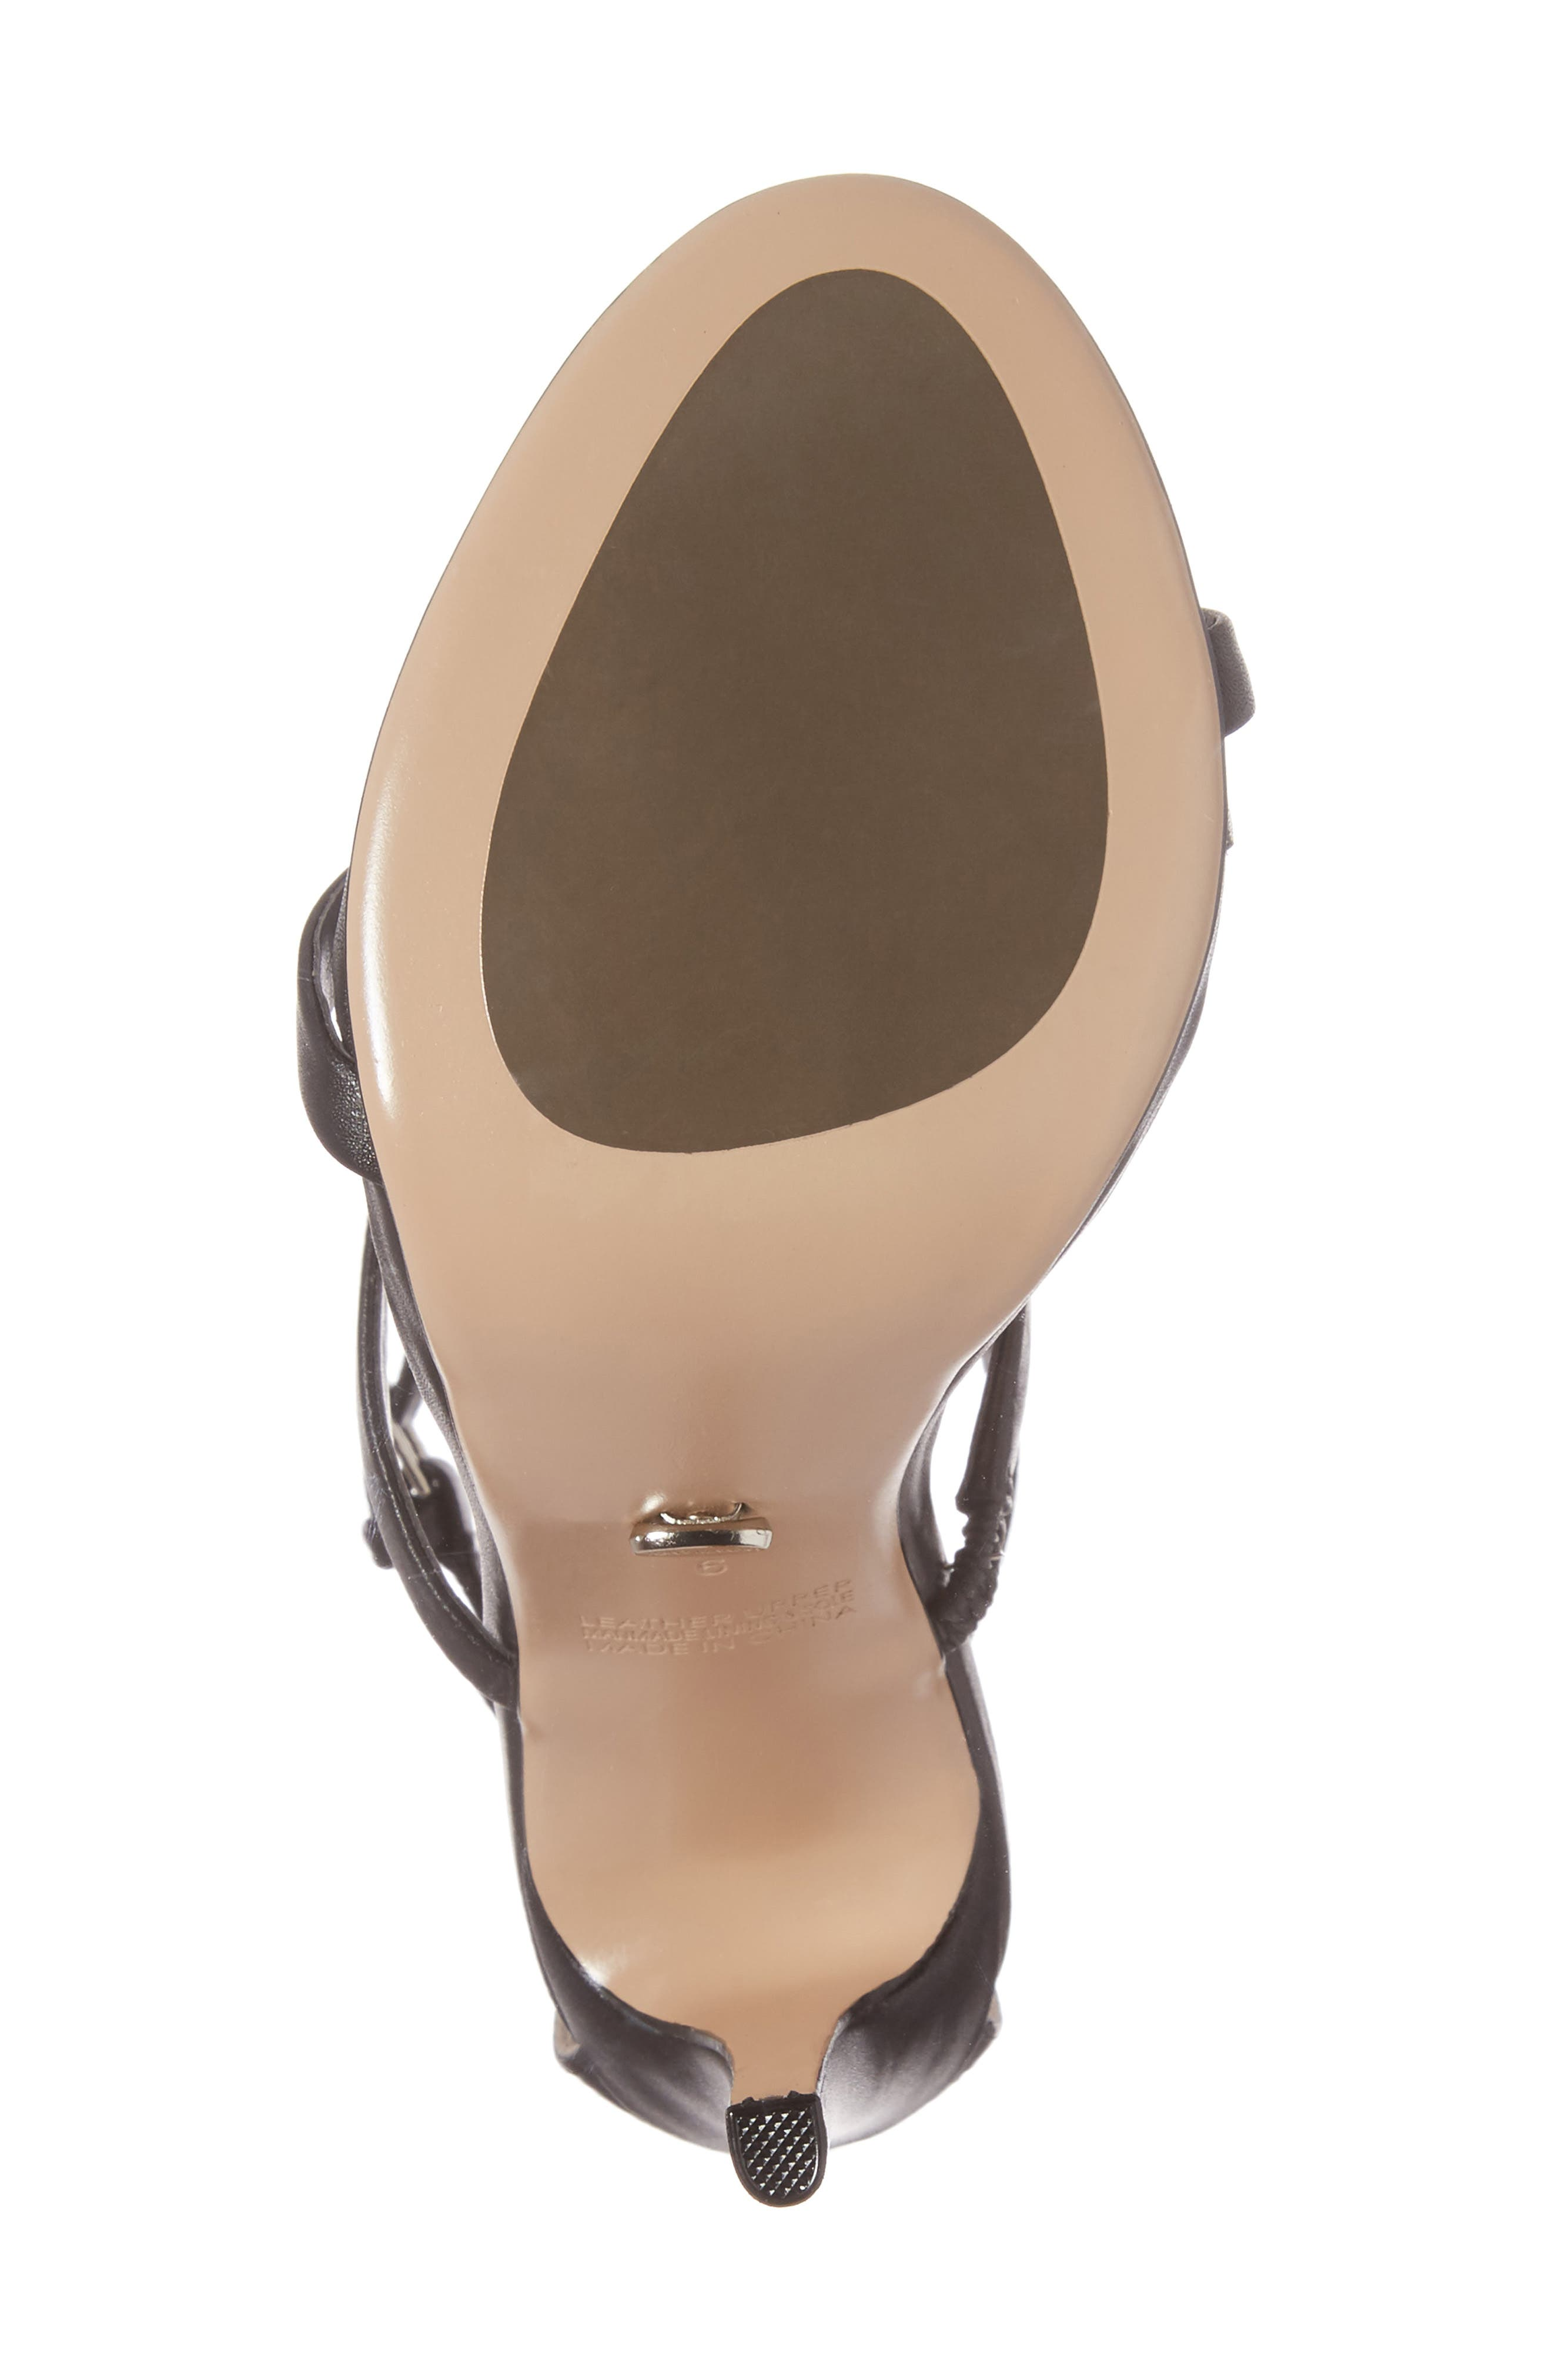 Atkins Sandal,                             Alternate thumbnail 6, color,                             BLACK CAPRETTO LEATHER